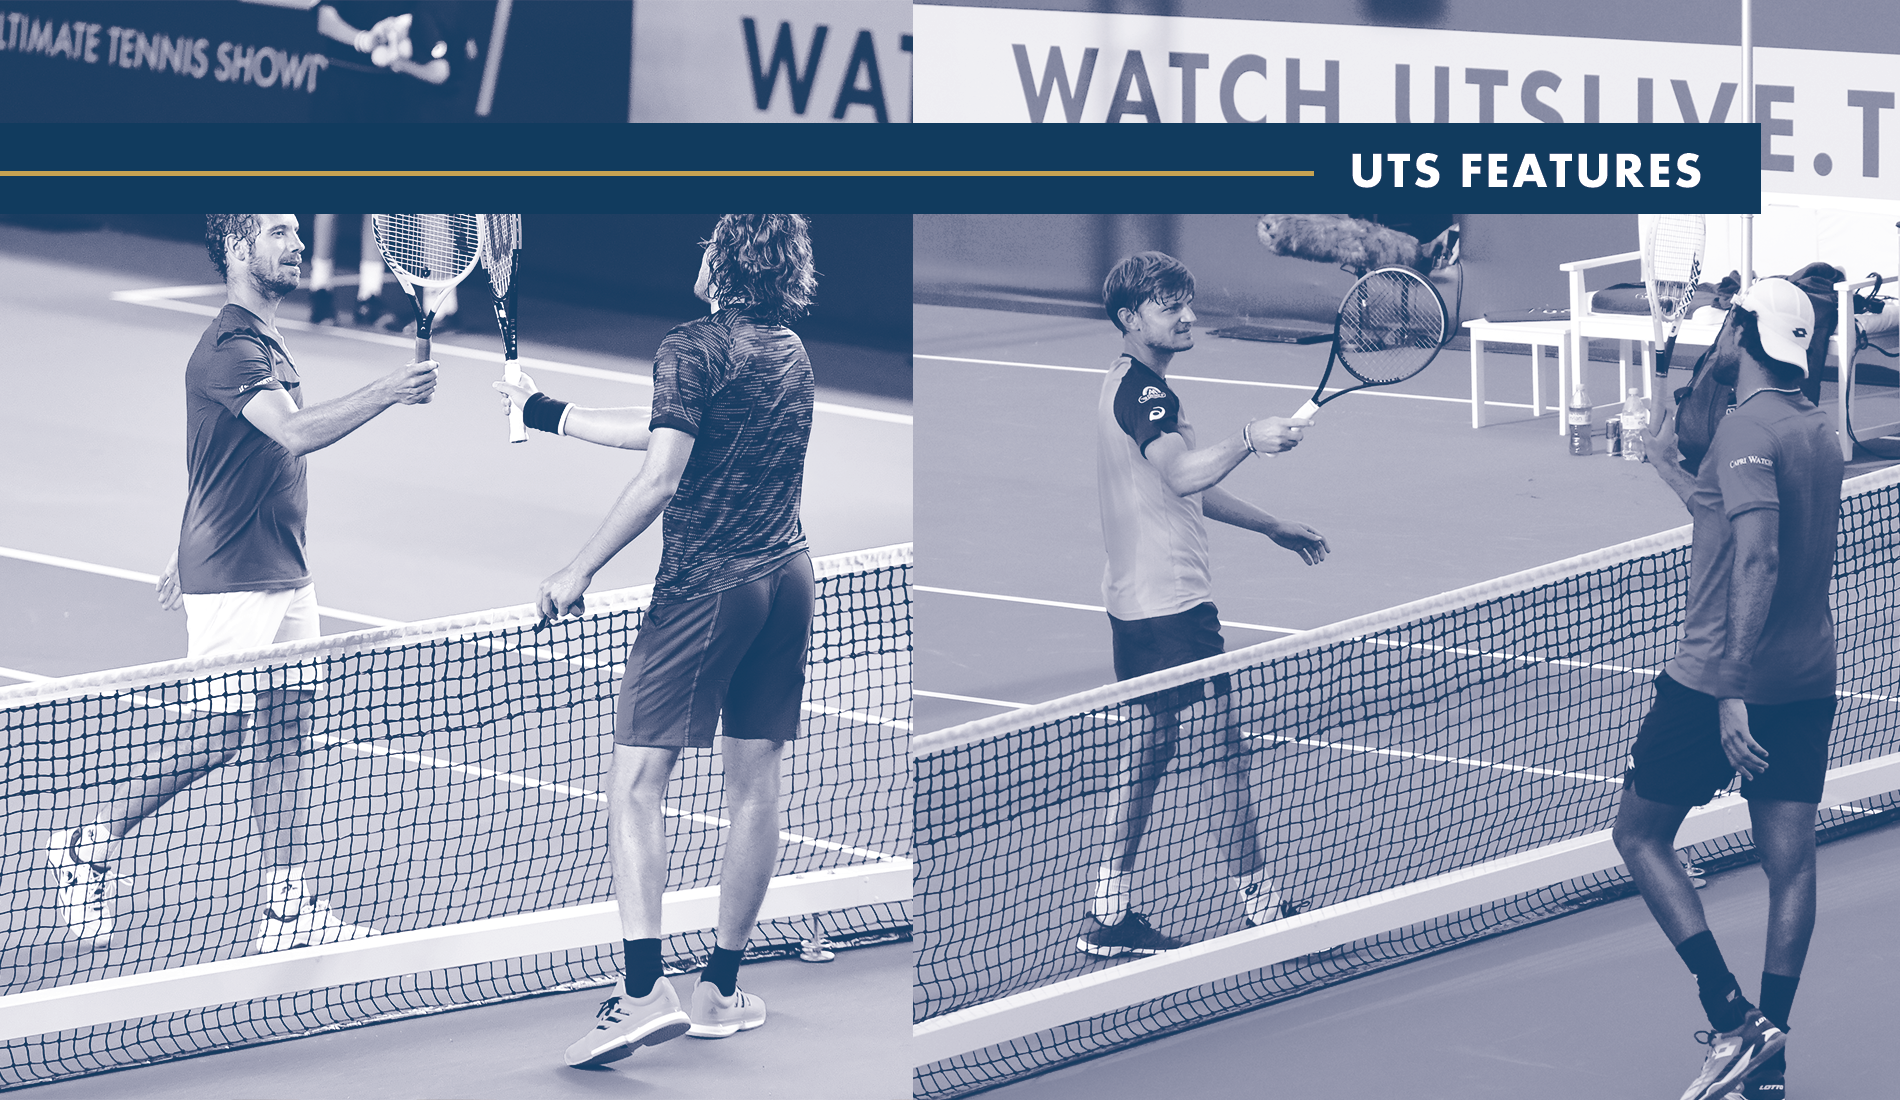 UTS Features: Final 4 reviewed